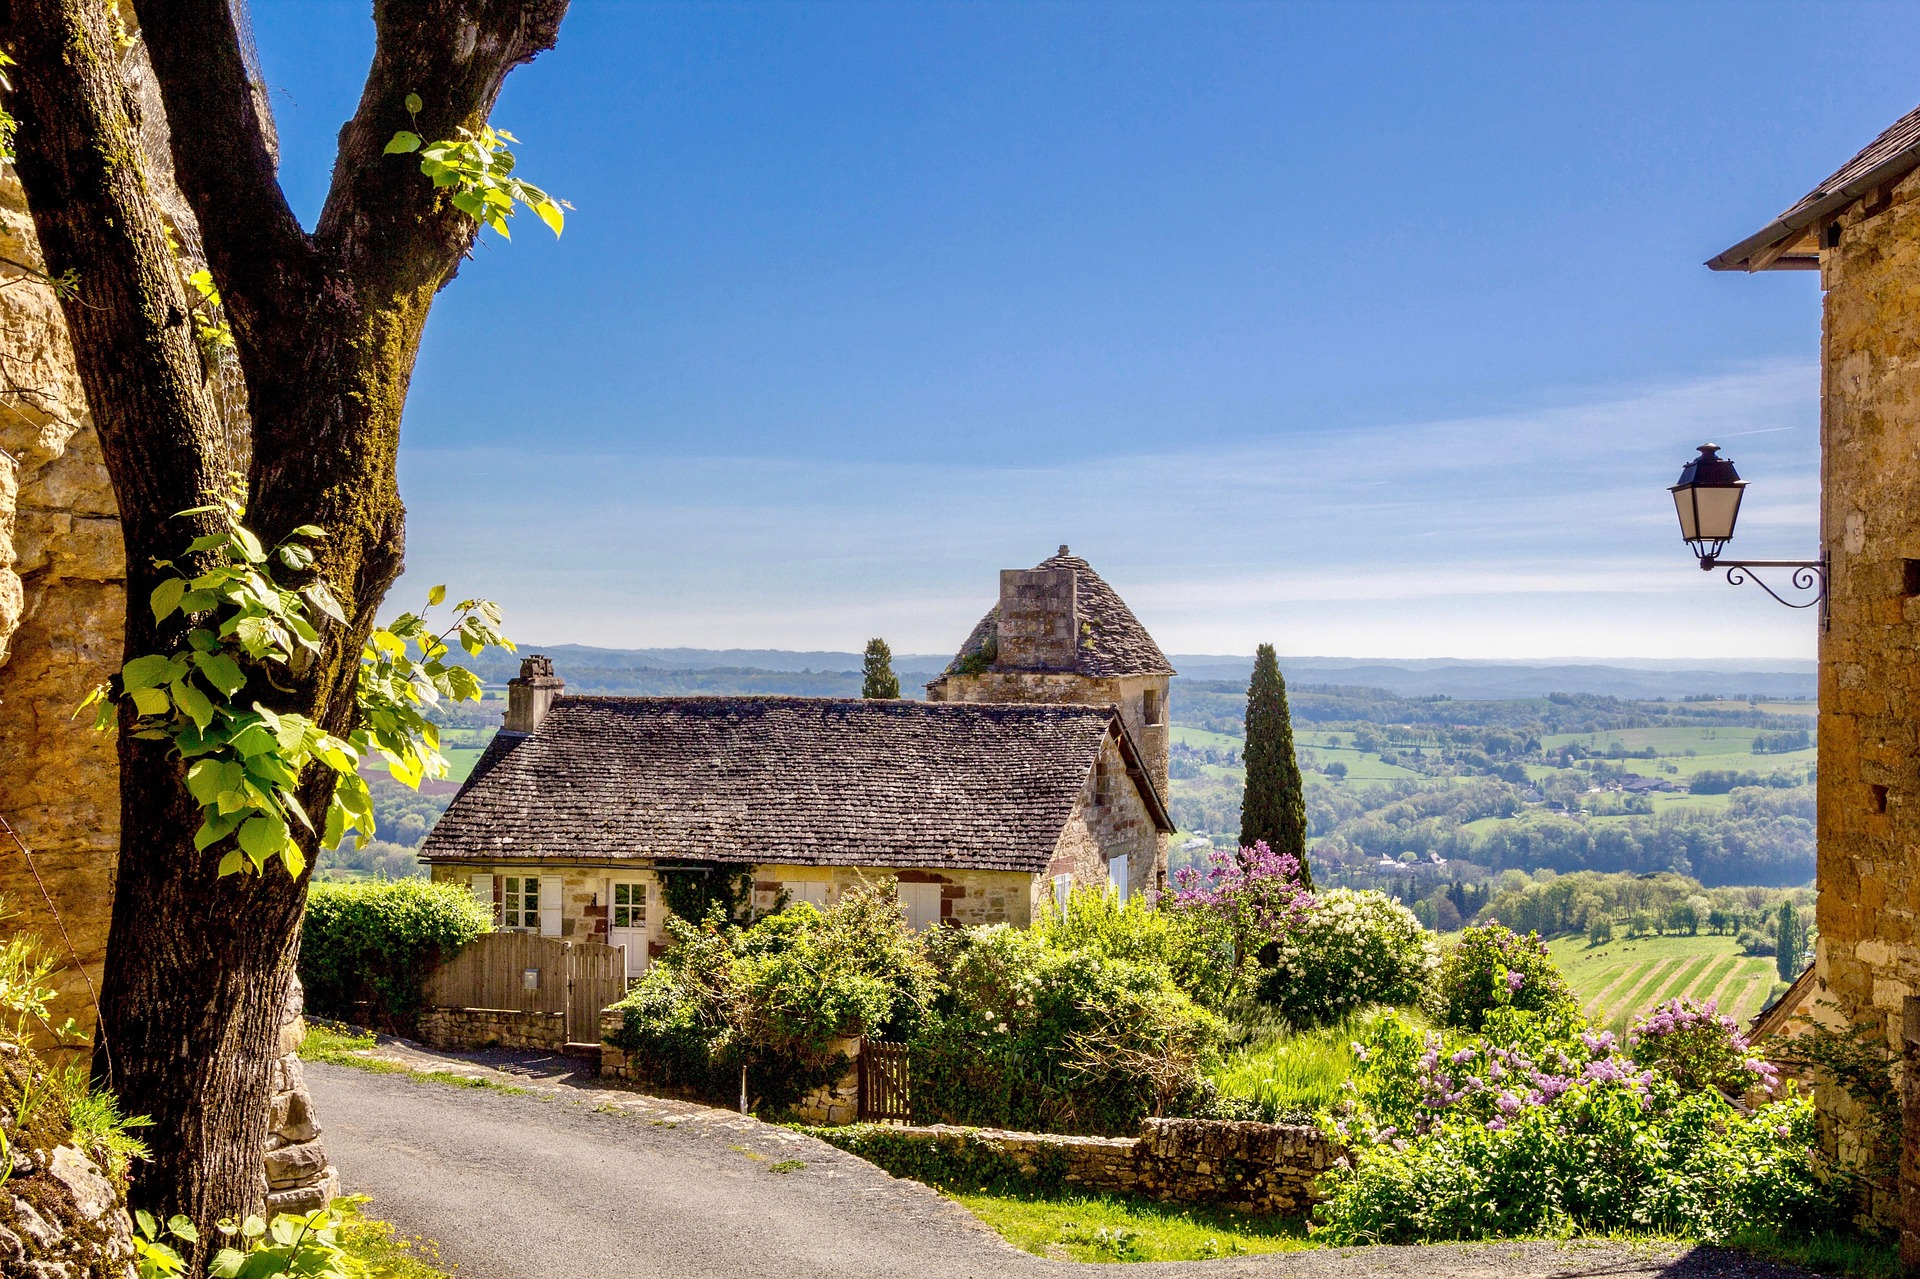 A city home or country retreat? Here's how to decide between them